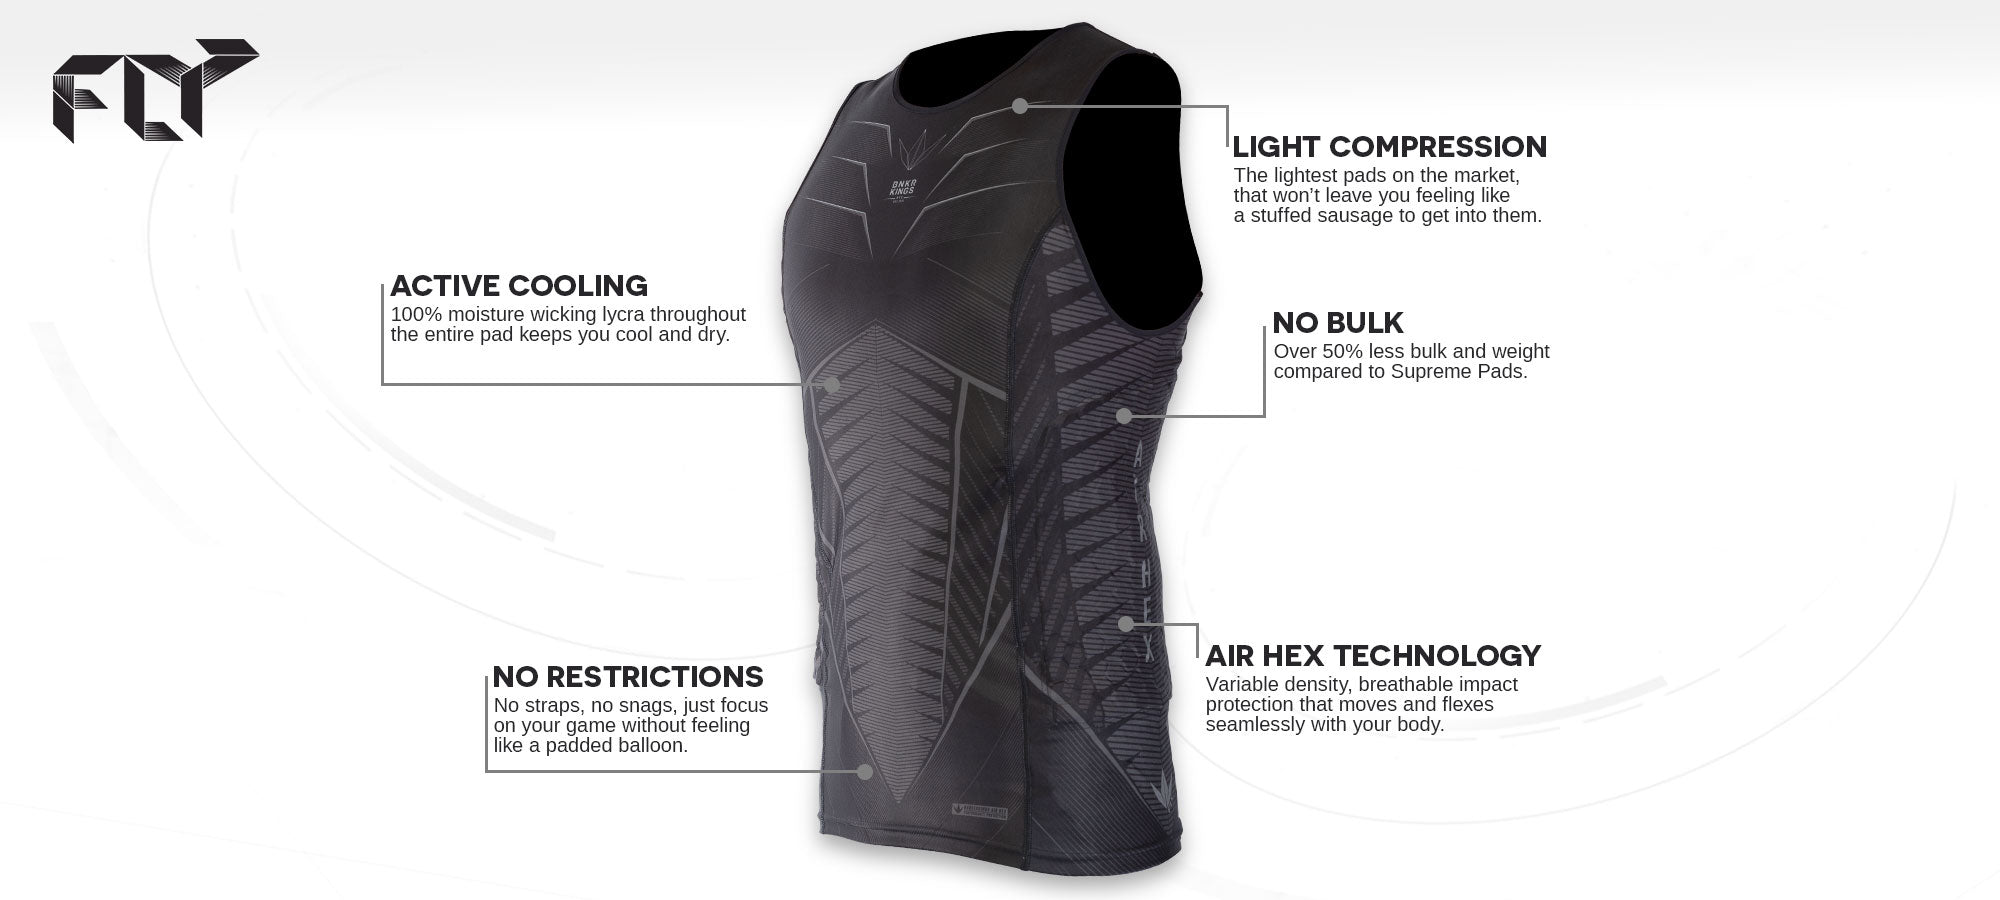 FLY Sleeveless Compression Top - Feature Banner